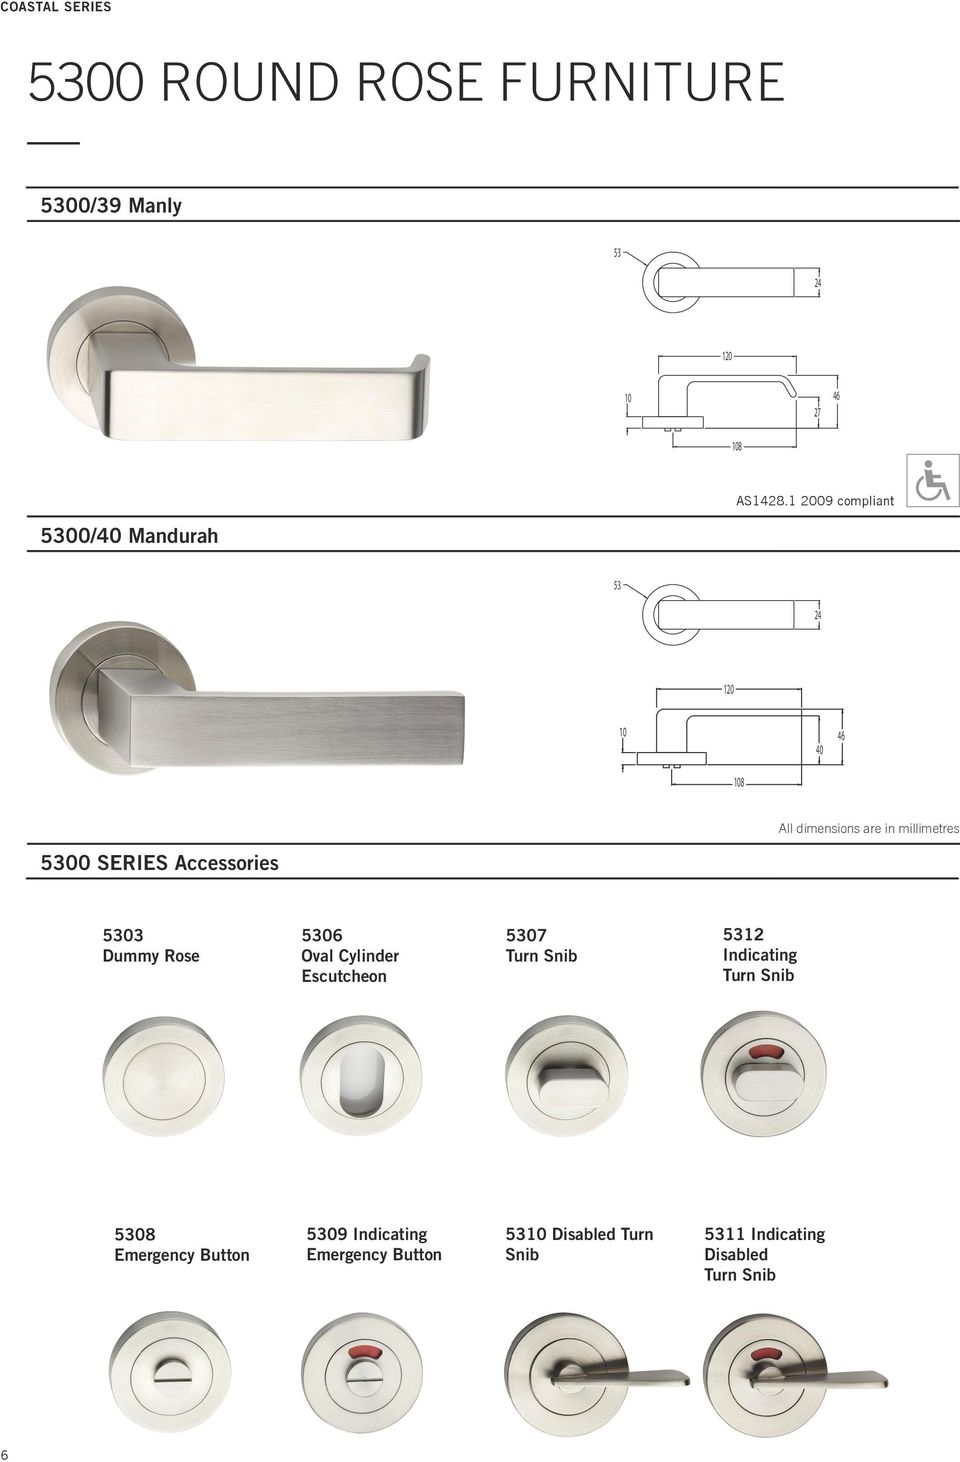 millimetres 5300 SERIES Accessories 5303 Dummy Rose 5306 Oval Cylinder Escutcheon 5307 Turn